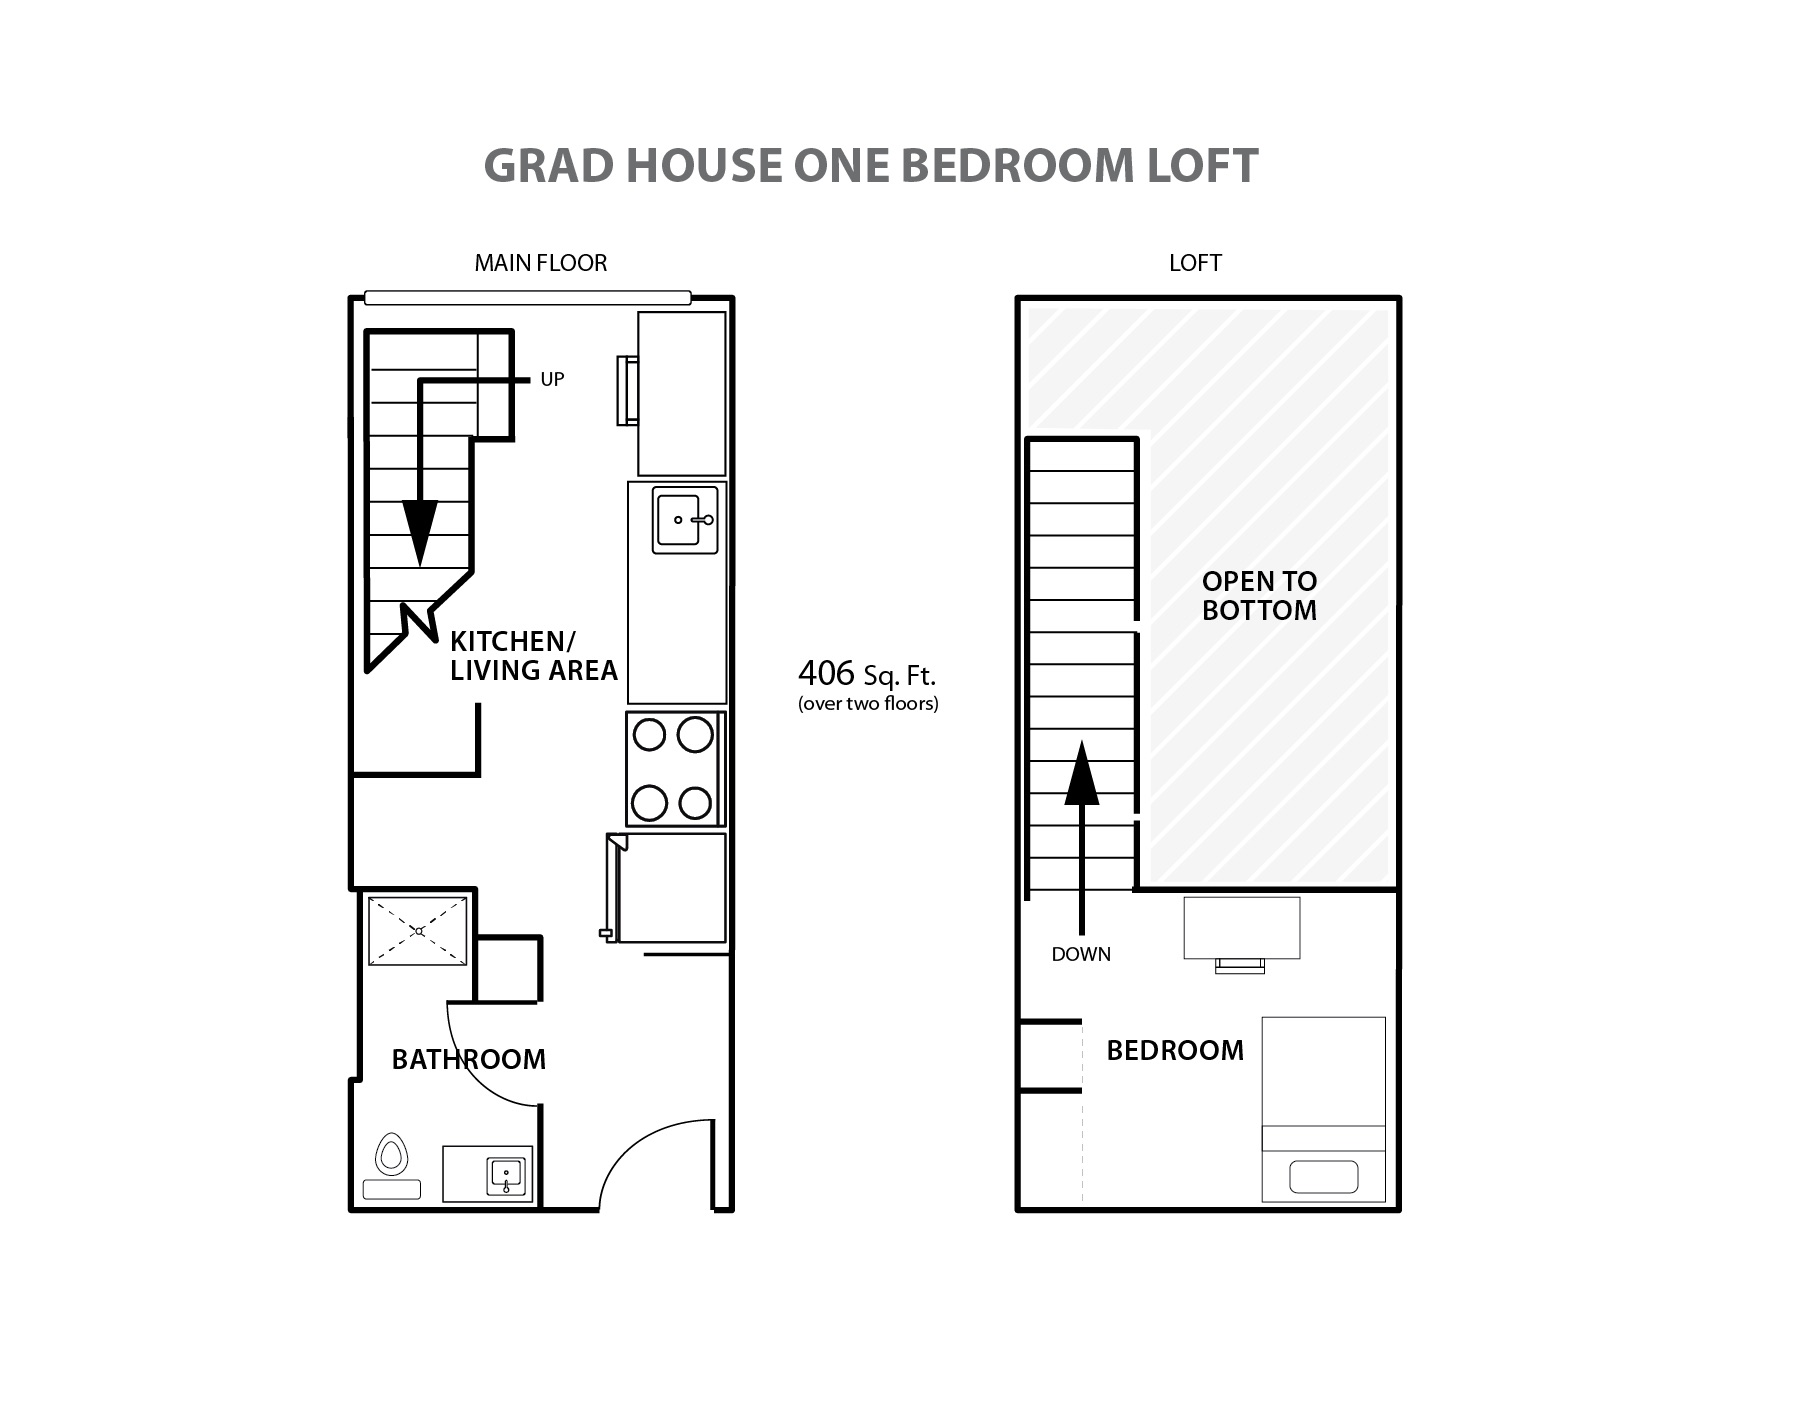 GH Floor Plans - Residence - University of Saskatchewan